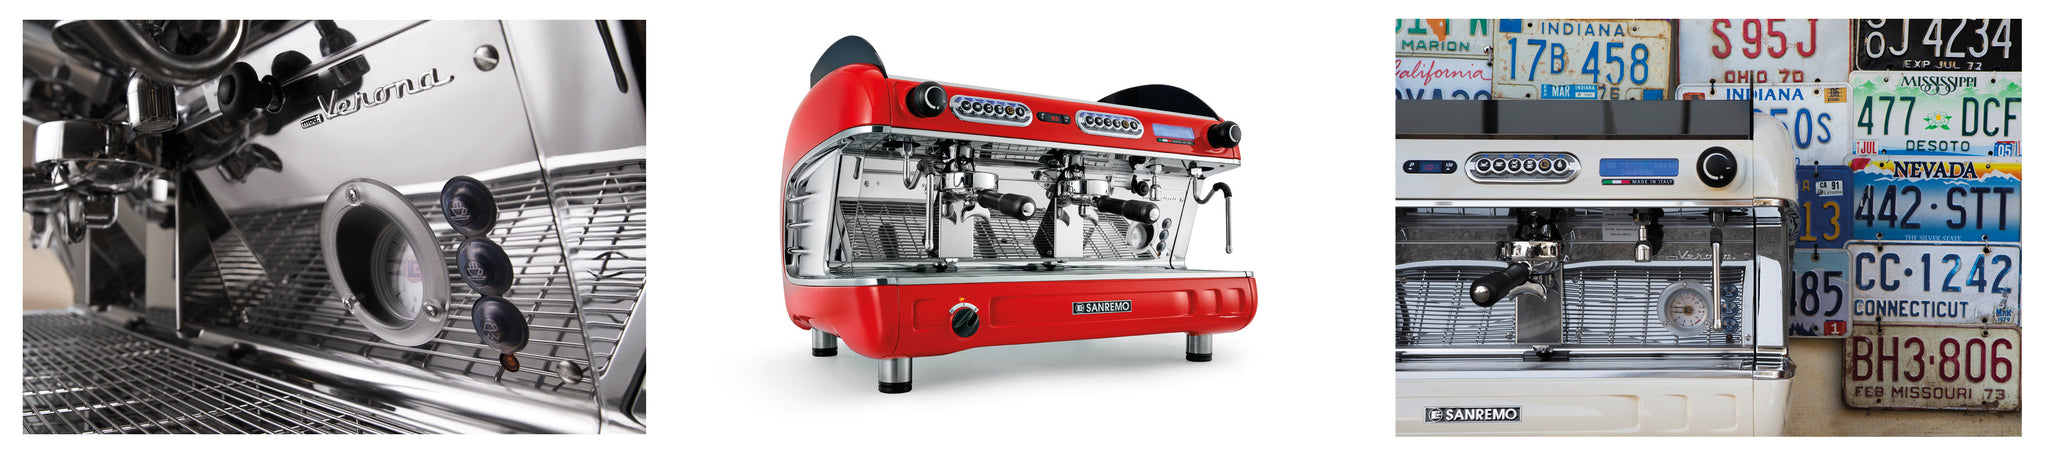 Sanremo Verona SED Details Red Situ Chrome Retro Espresso Machine